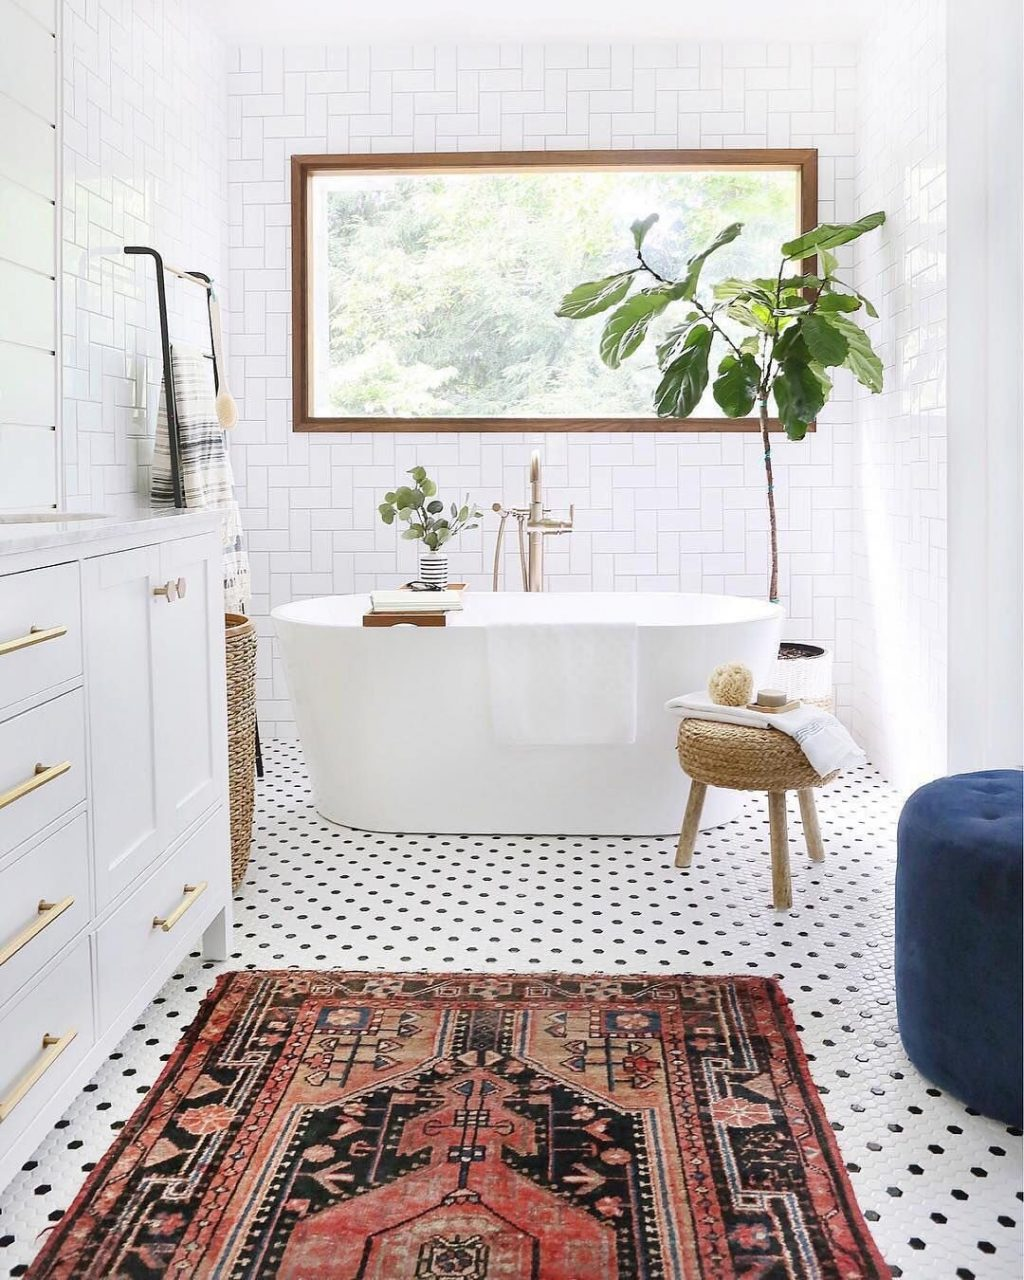 Bathroom With Persian Rug And Polka Dotted Floors Pinned Www